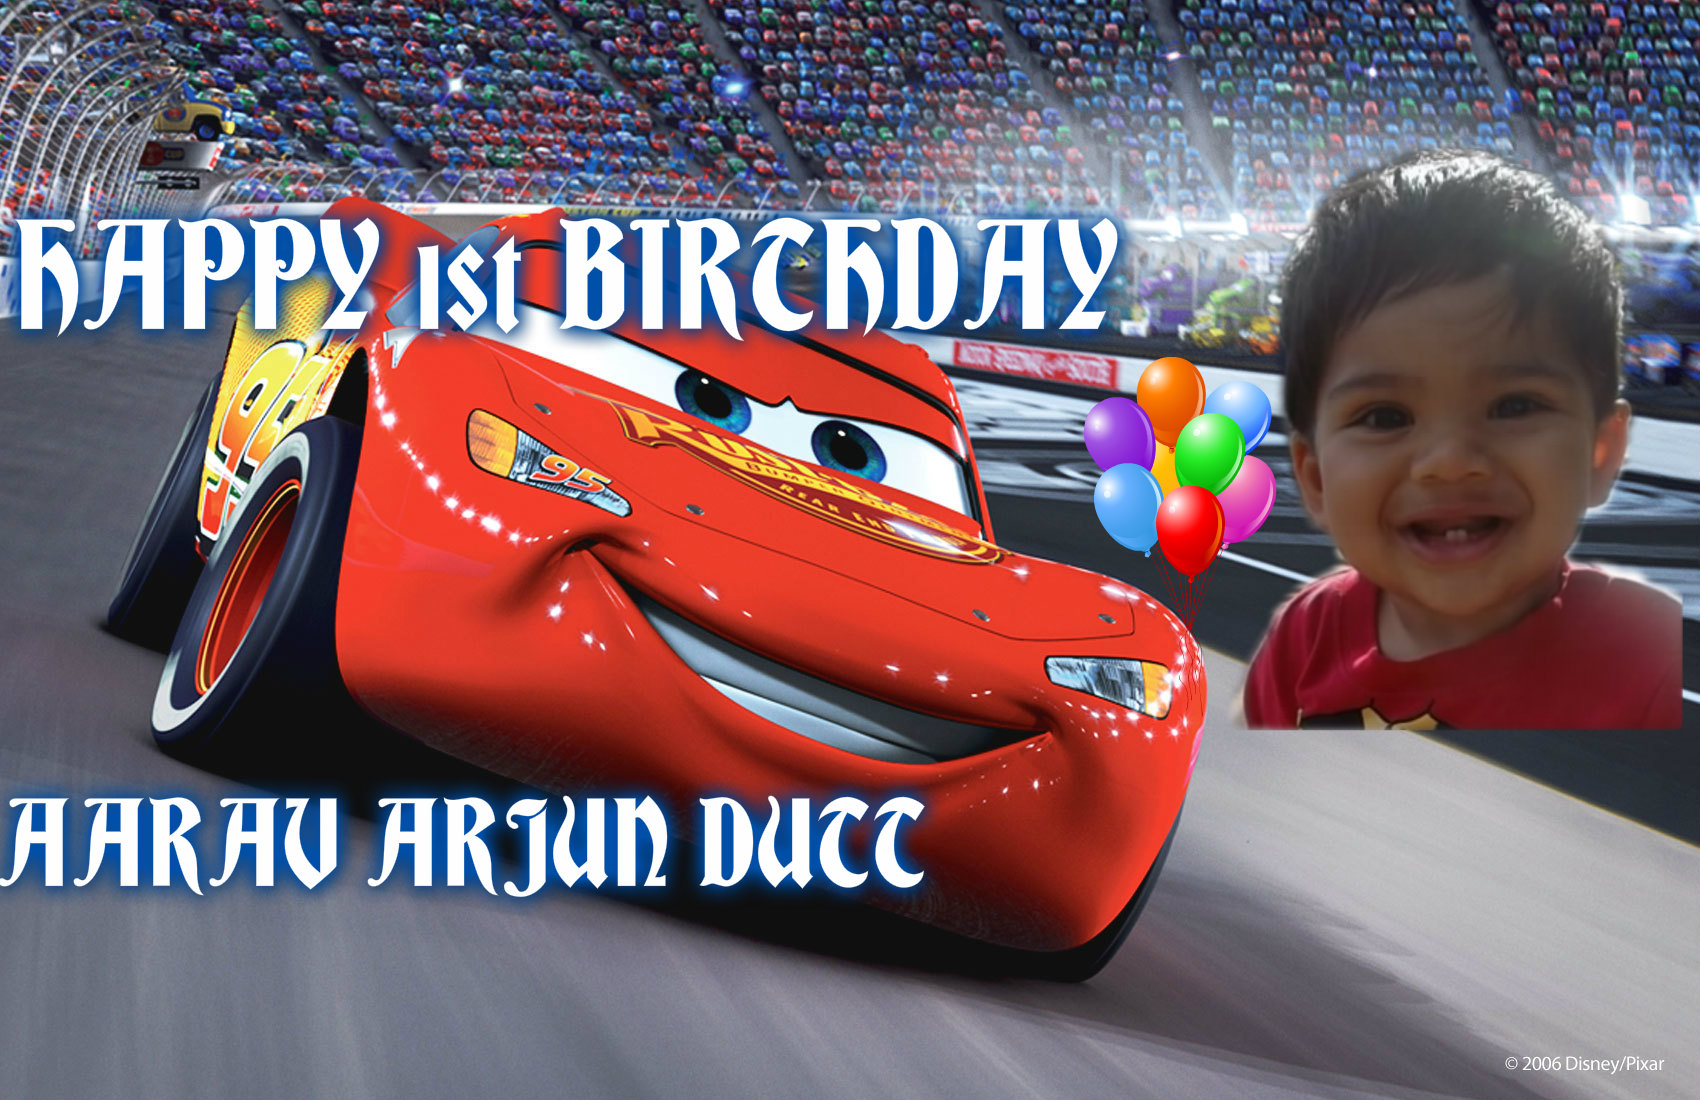 Disney Pixar Cars Images BIRTHDAY HD Wallpaper And Background Photos